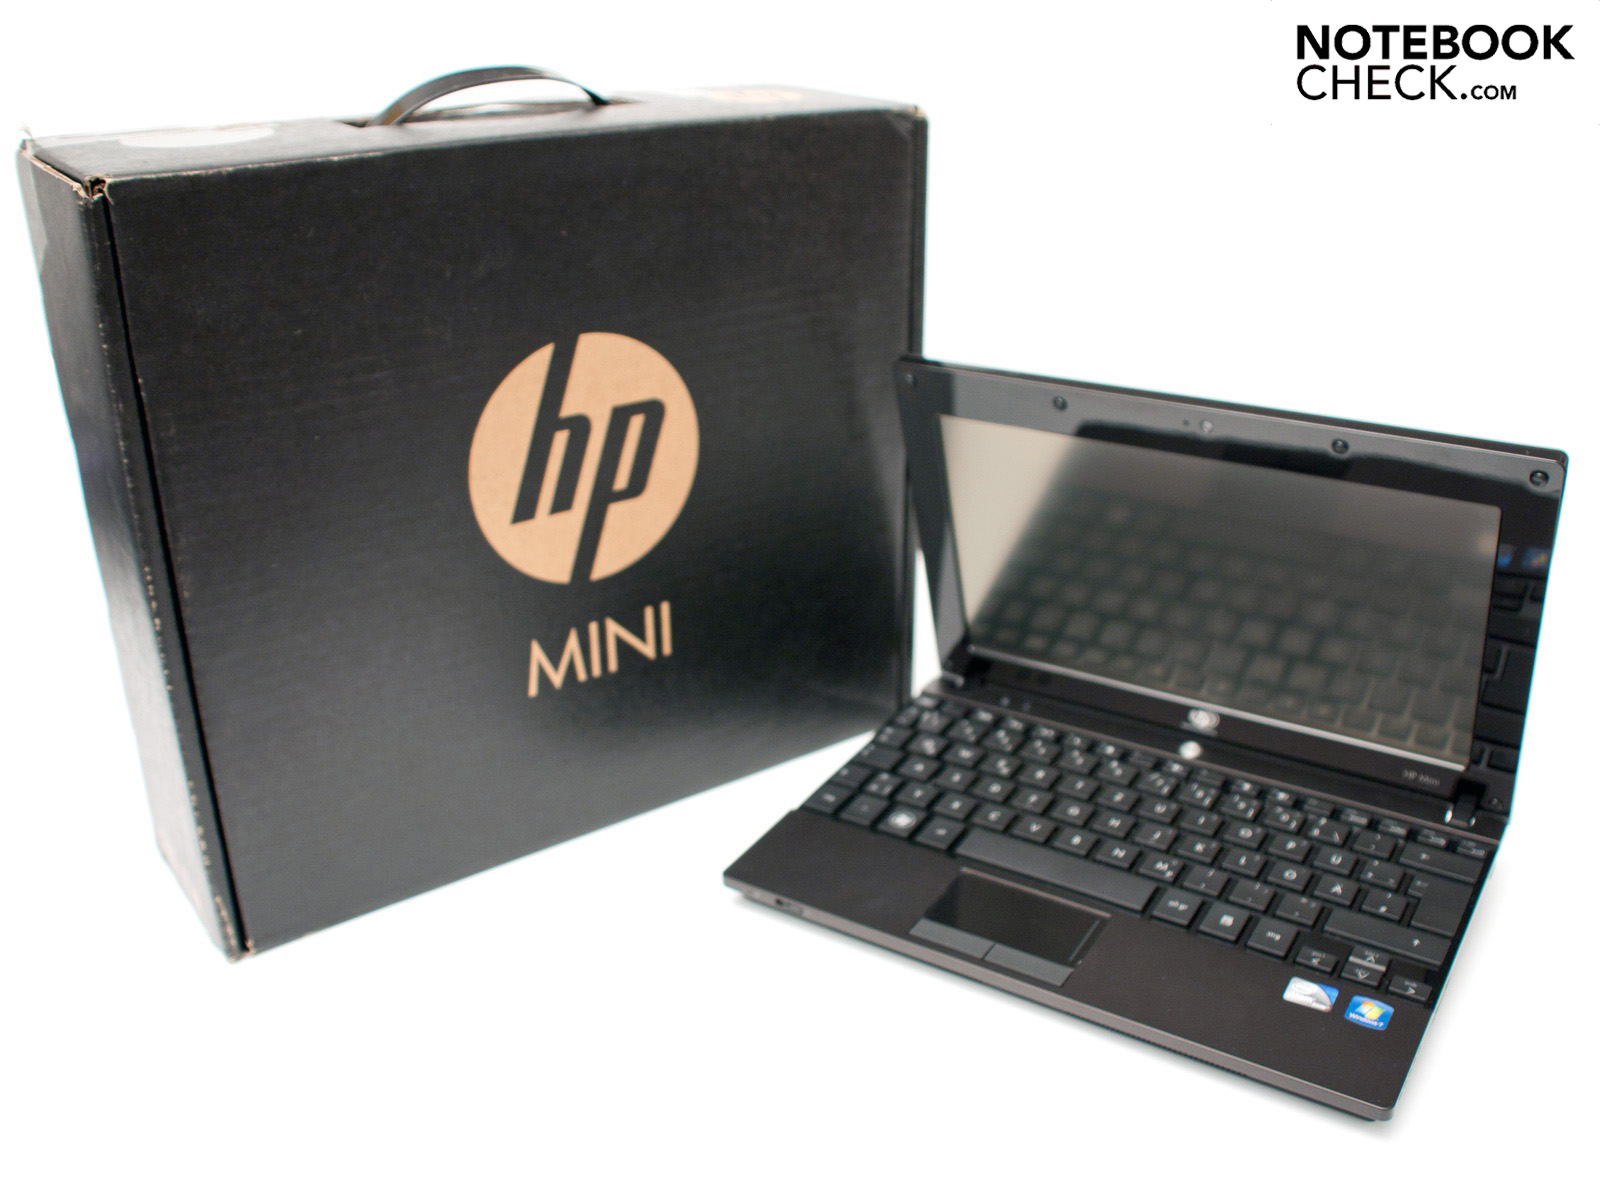 HP Mini 1131TU Synaptics Touchpad Descargar Controlador